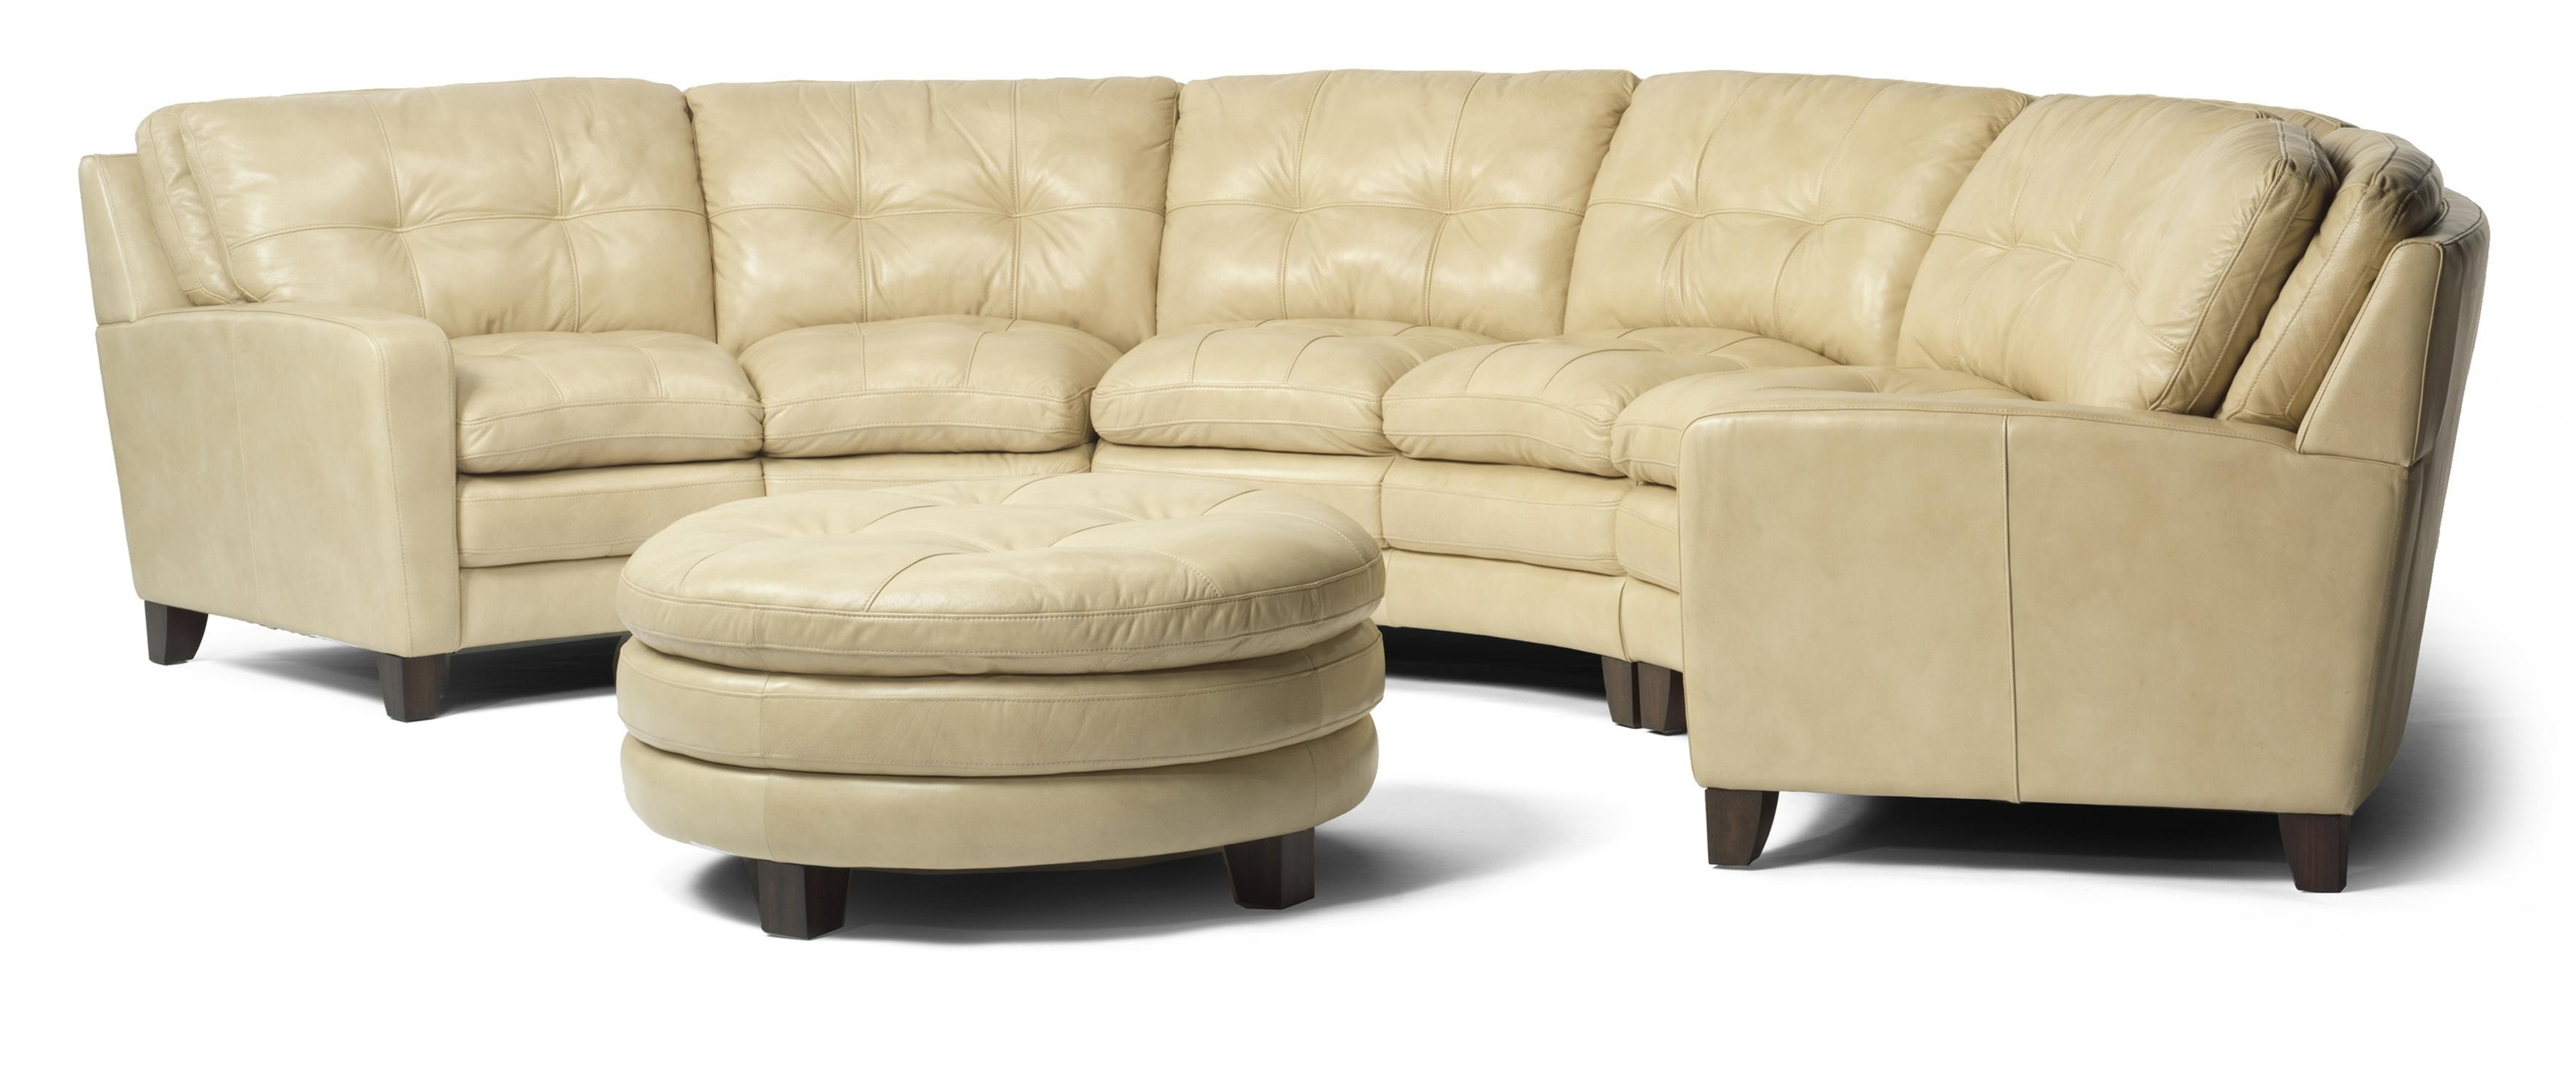 Jonesboro Ar Sectional Sofas With Well Known Flexsteel Latitudes – South Street Curved Sectional Sofa – Ahfa (View 6 of 15)